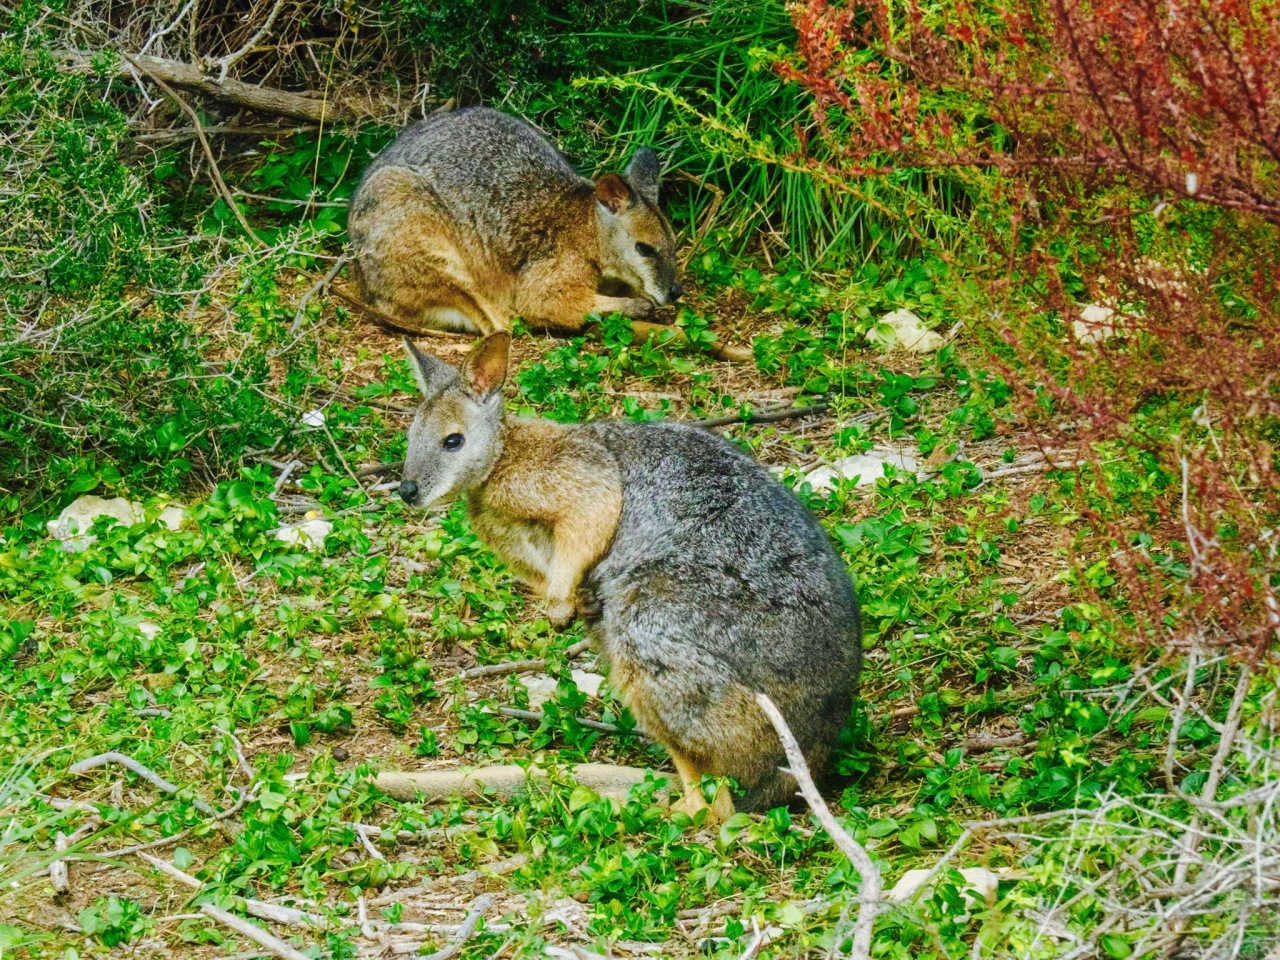 "Our first wildlife sighting shortly after arriving at Kangaroo Island: #wondrouswallaby (I couldn't resist the hashtag and alliteration) The name ""wallaby"" comes from Dharug 'walabi' or 'waliba'.  Young wallabies are known as ""joeys"", like many other marsupials. Adult male wallabies are referred to as bucks, boomers, or jacks. An adult female wallaby is known as a doe, flyer, or jill.  A group of wallabies is called a court, mob, or troupe. [Moment captured by ESCAPESEEKER photog, Jim Jones]"